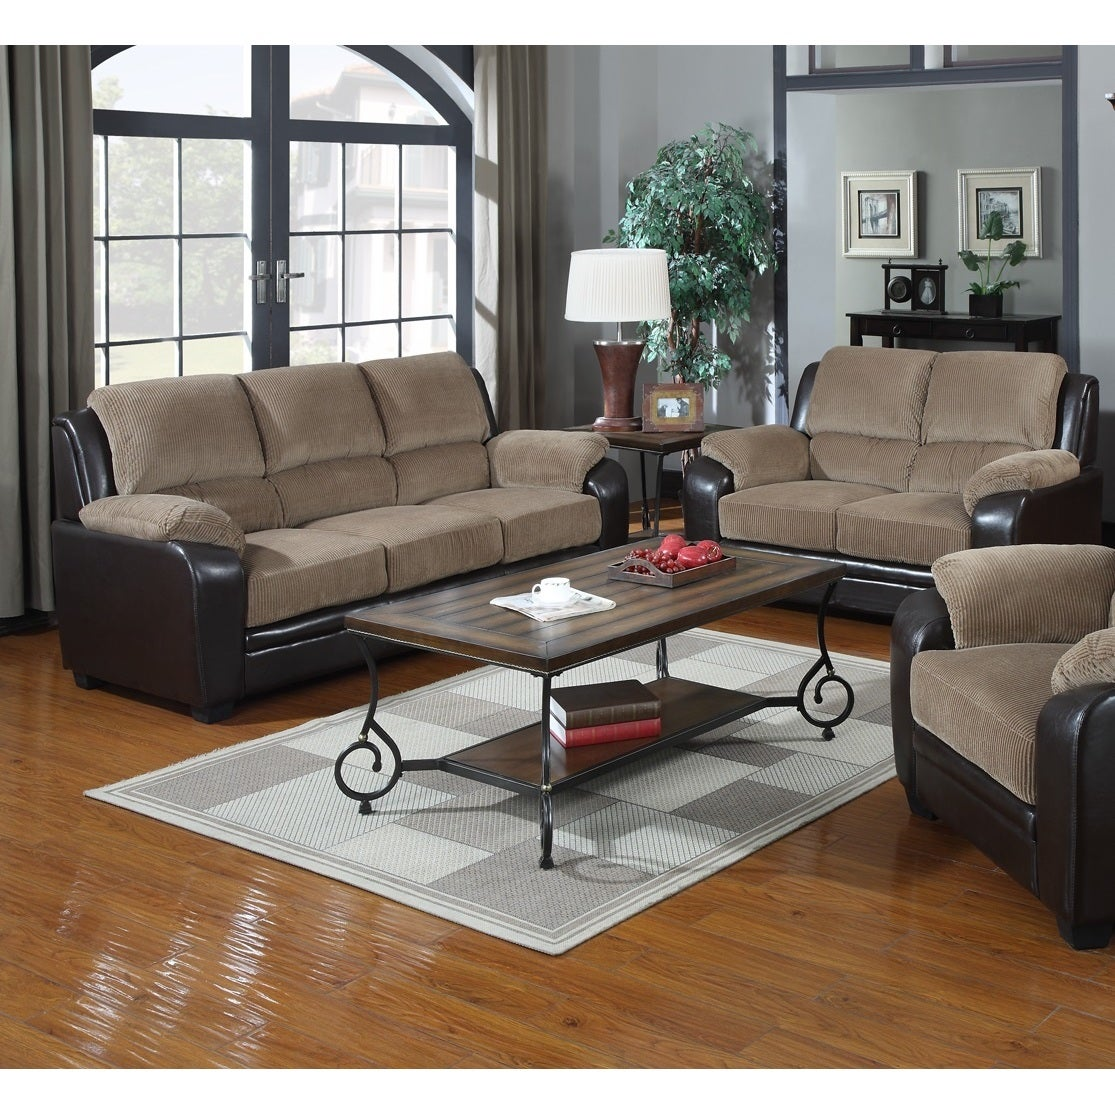 Jagger 2 Piece Corduroy Fabric With Pu Leather Sofa Loveseat Set On Free Shipping Today 10401456